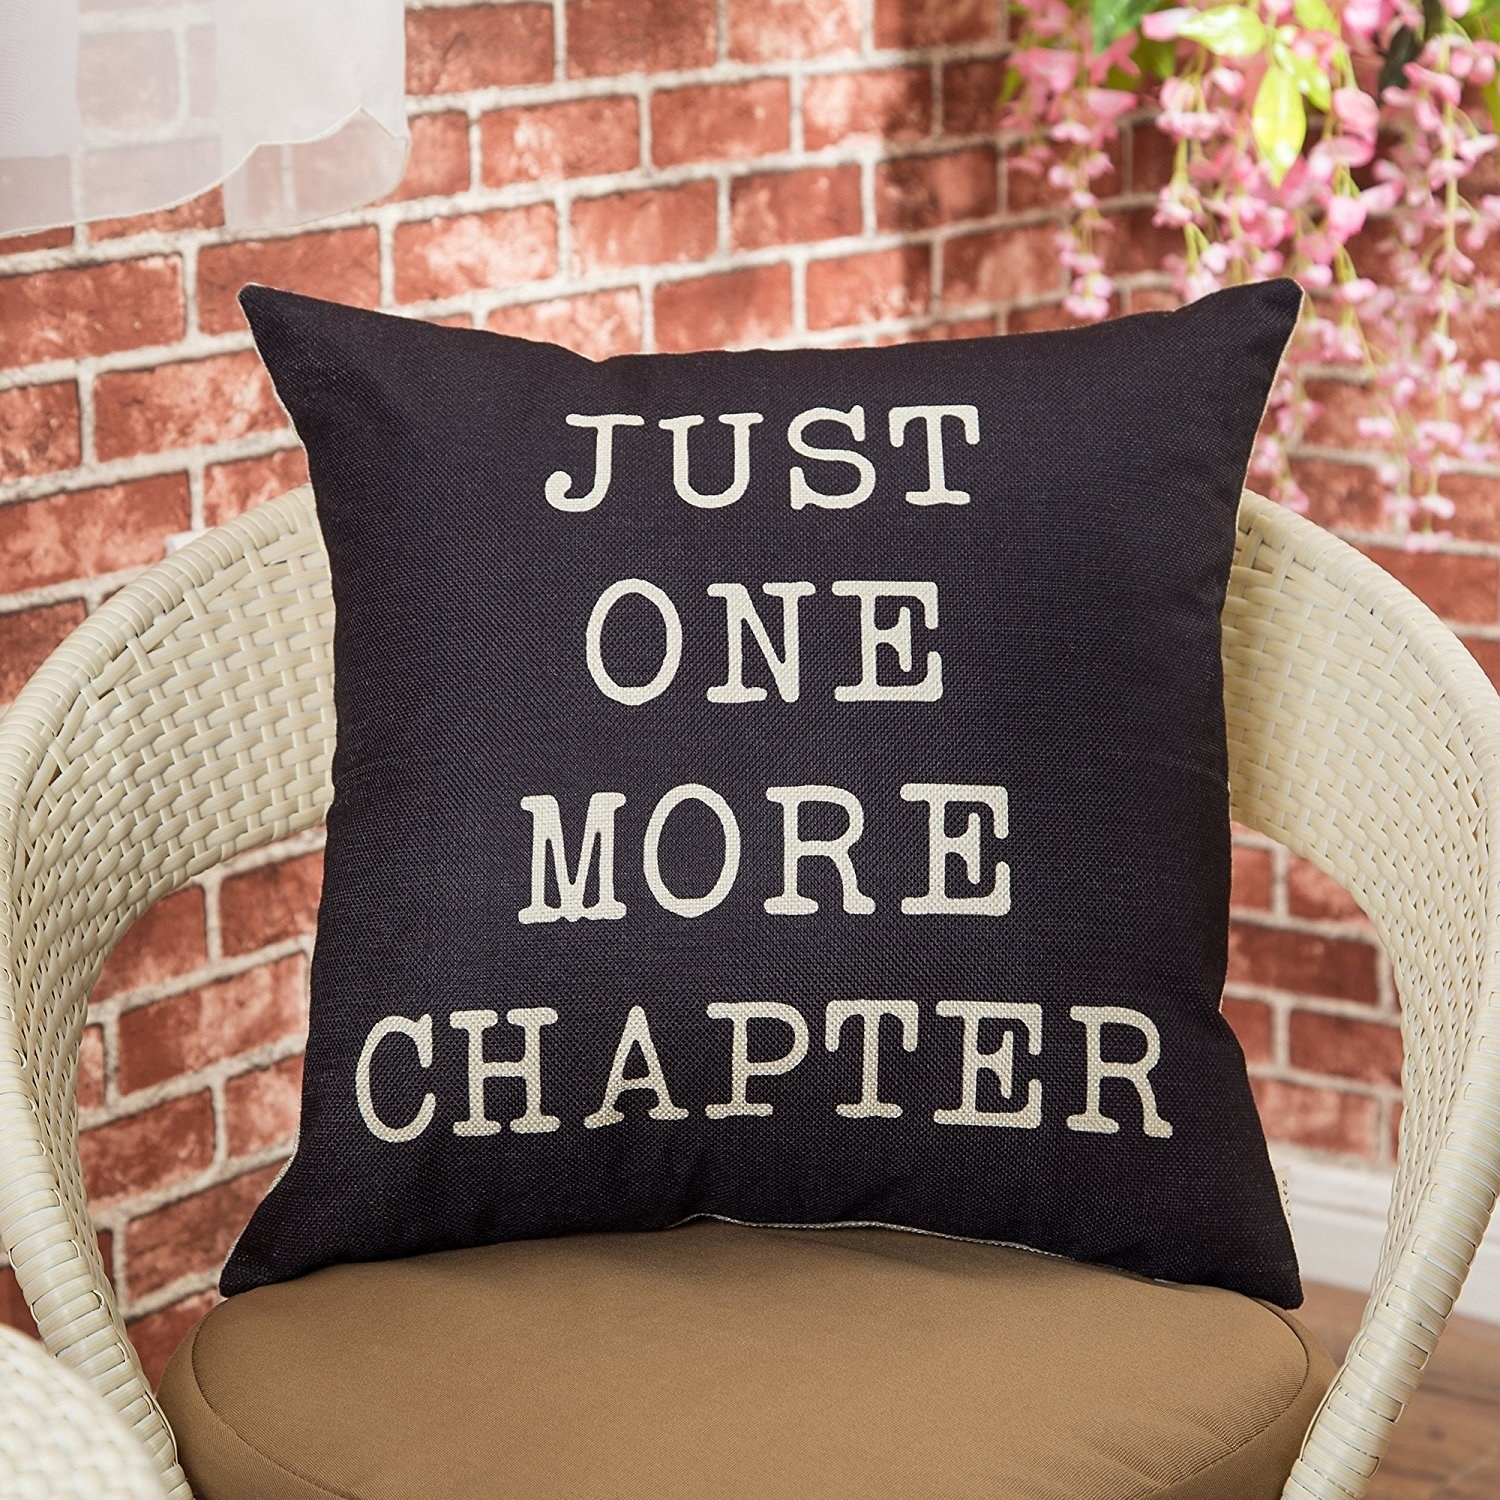 27 Gifts Any Book Lover Should Add To Their Wish List